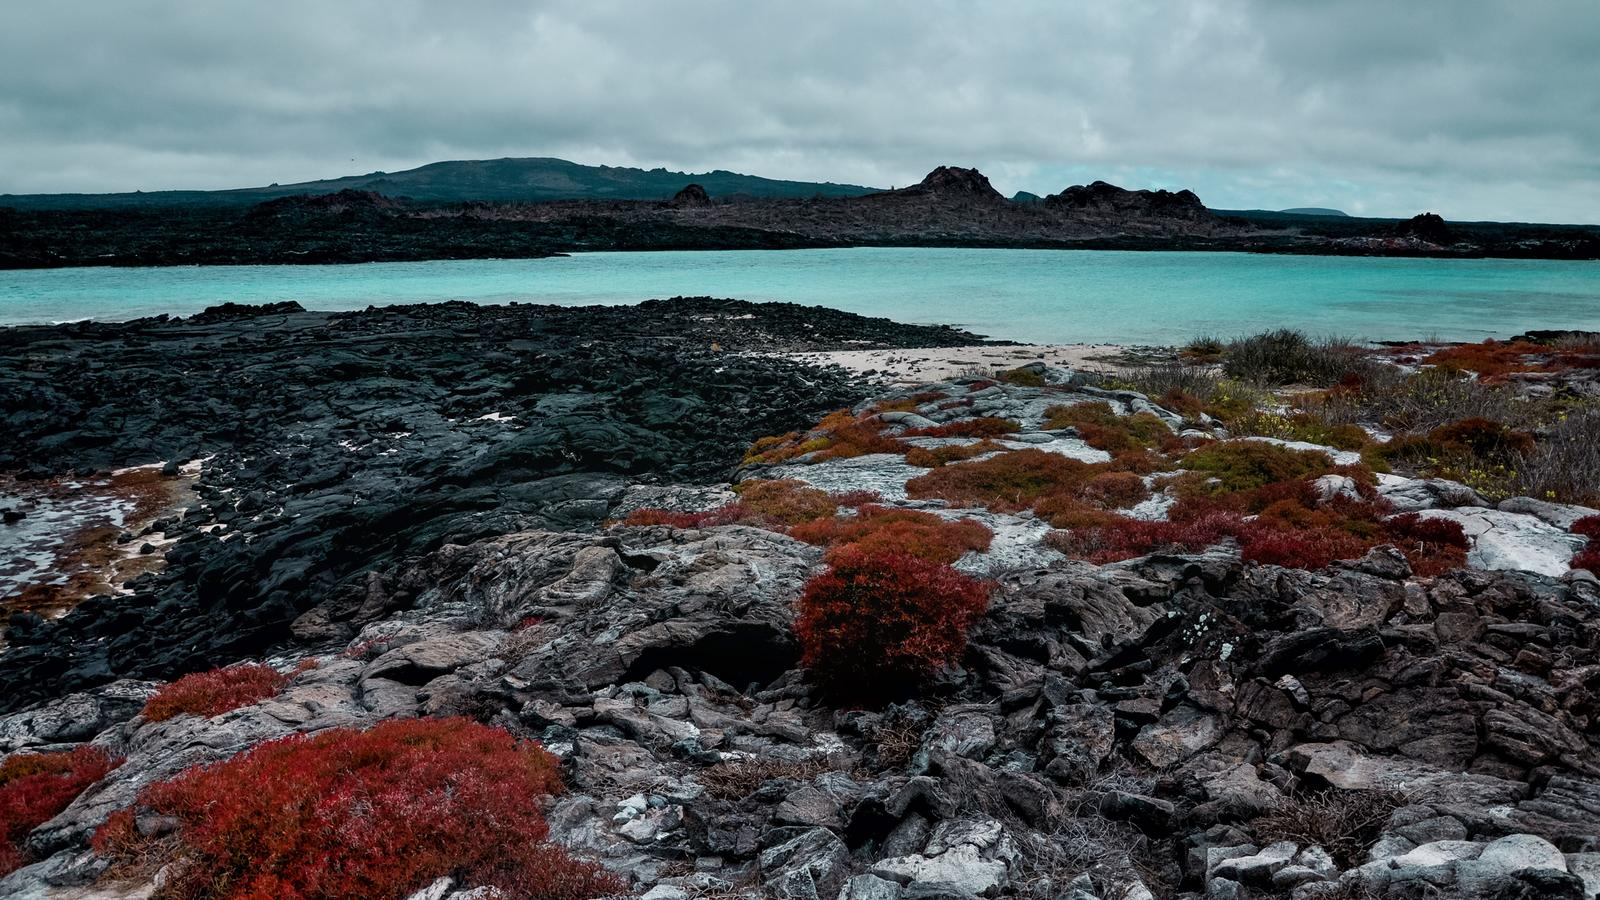 Shrubs growing out of the volcanic rocks in the Galapagos